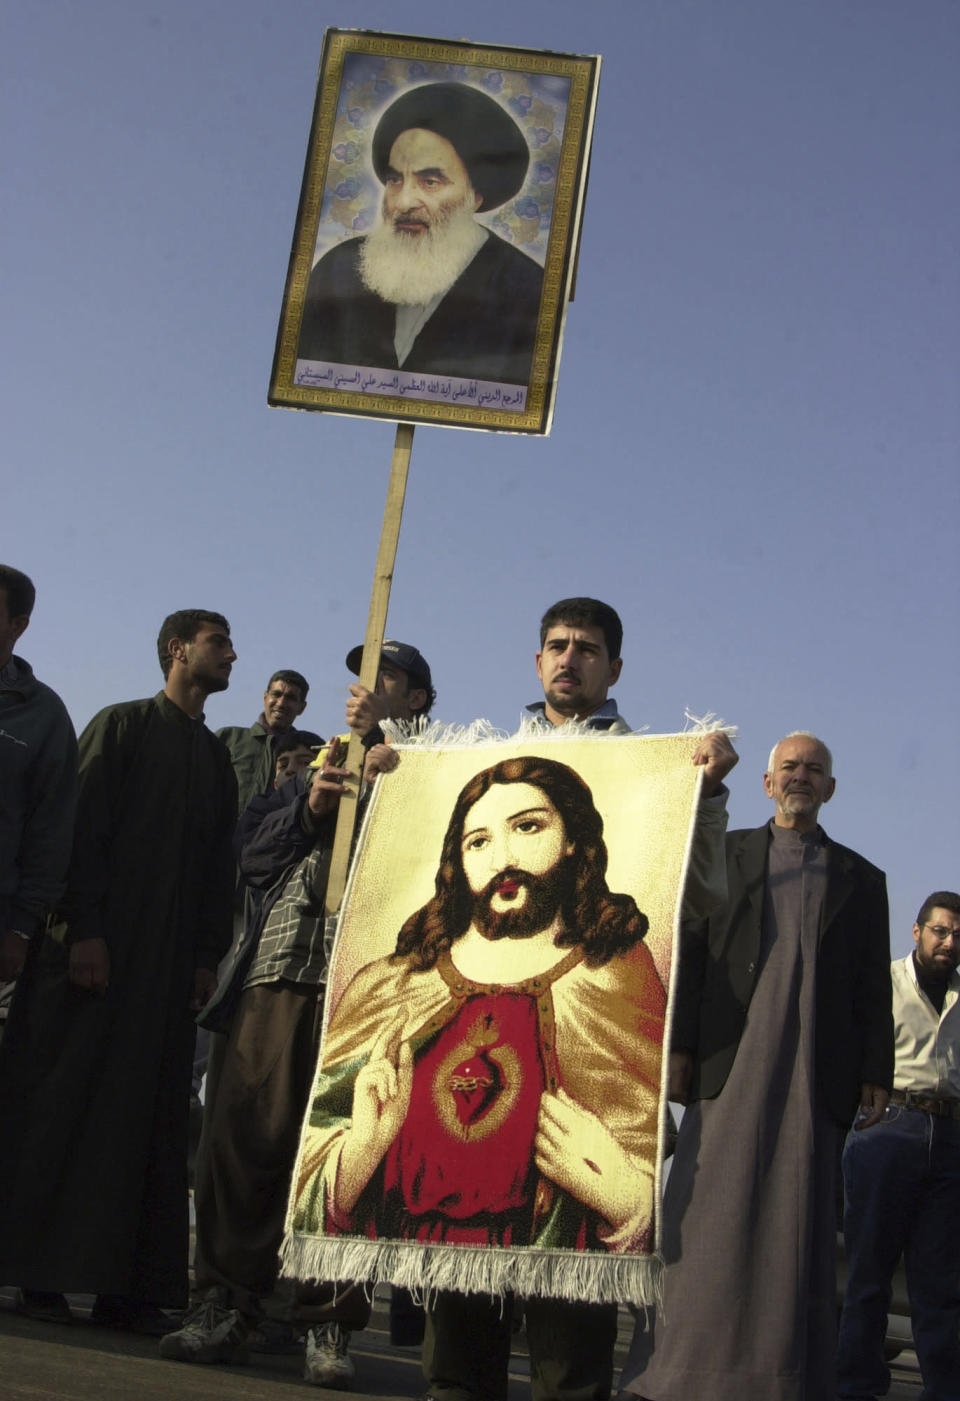 FILE - In this Jan. 19, 2004 file photo, an Iraqi Christian holds a carpet with an image of Jesus Christ and a poster of Grand Ayatollah Ali al-Husseini al-Sistani during a march in Baghdad, Iraq. On Saturday, March 6, 2021, Pope Francis will visit the 90-year-old Grand Ayatollah who is revered by many Shiites worldwide and whose words hold powerful influence in Iraq and beyond. The pontiff and ayatollah will meet in al-Sistani's modest home in the Iraqi city of Najaf. (AP Photo/Hadi Mizban, File)